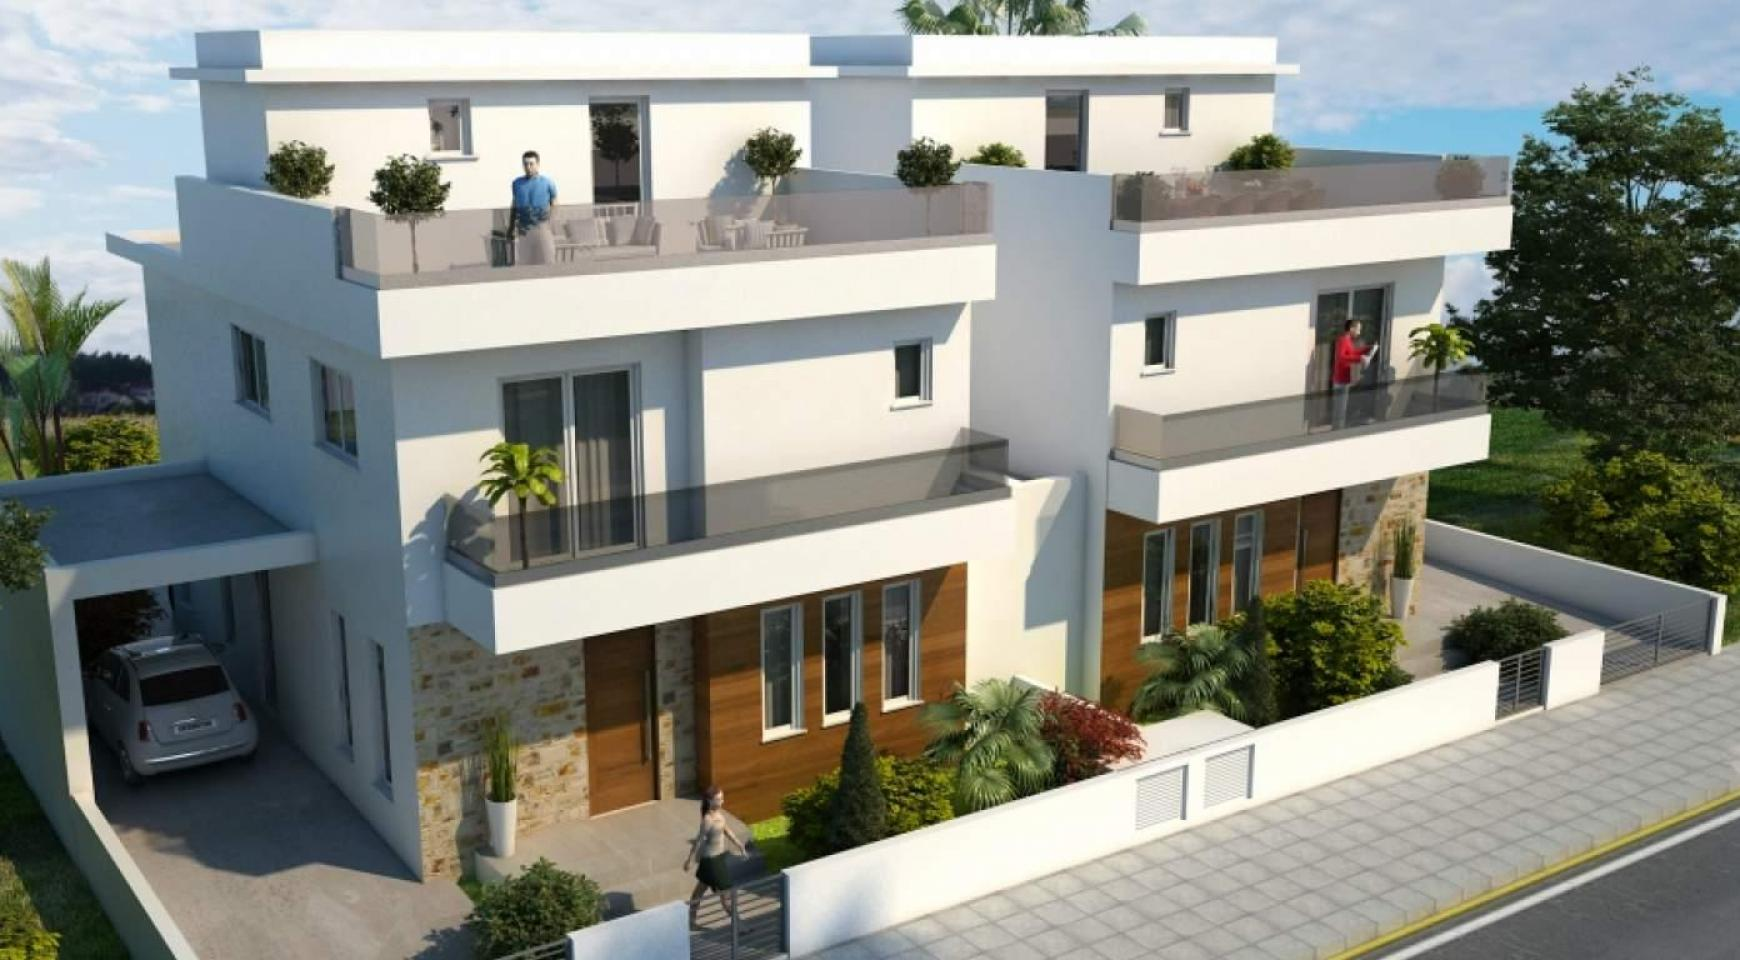 New Modern 4 Bedroom House in Leivadia Area - 4